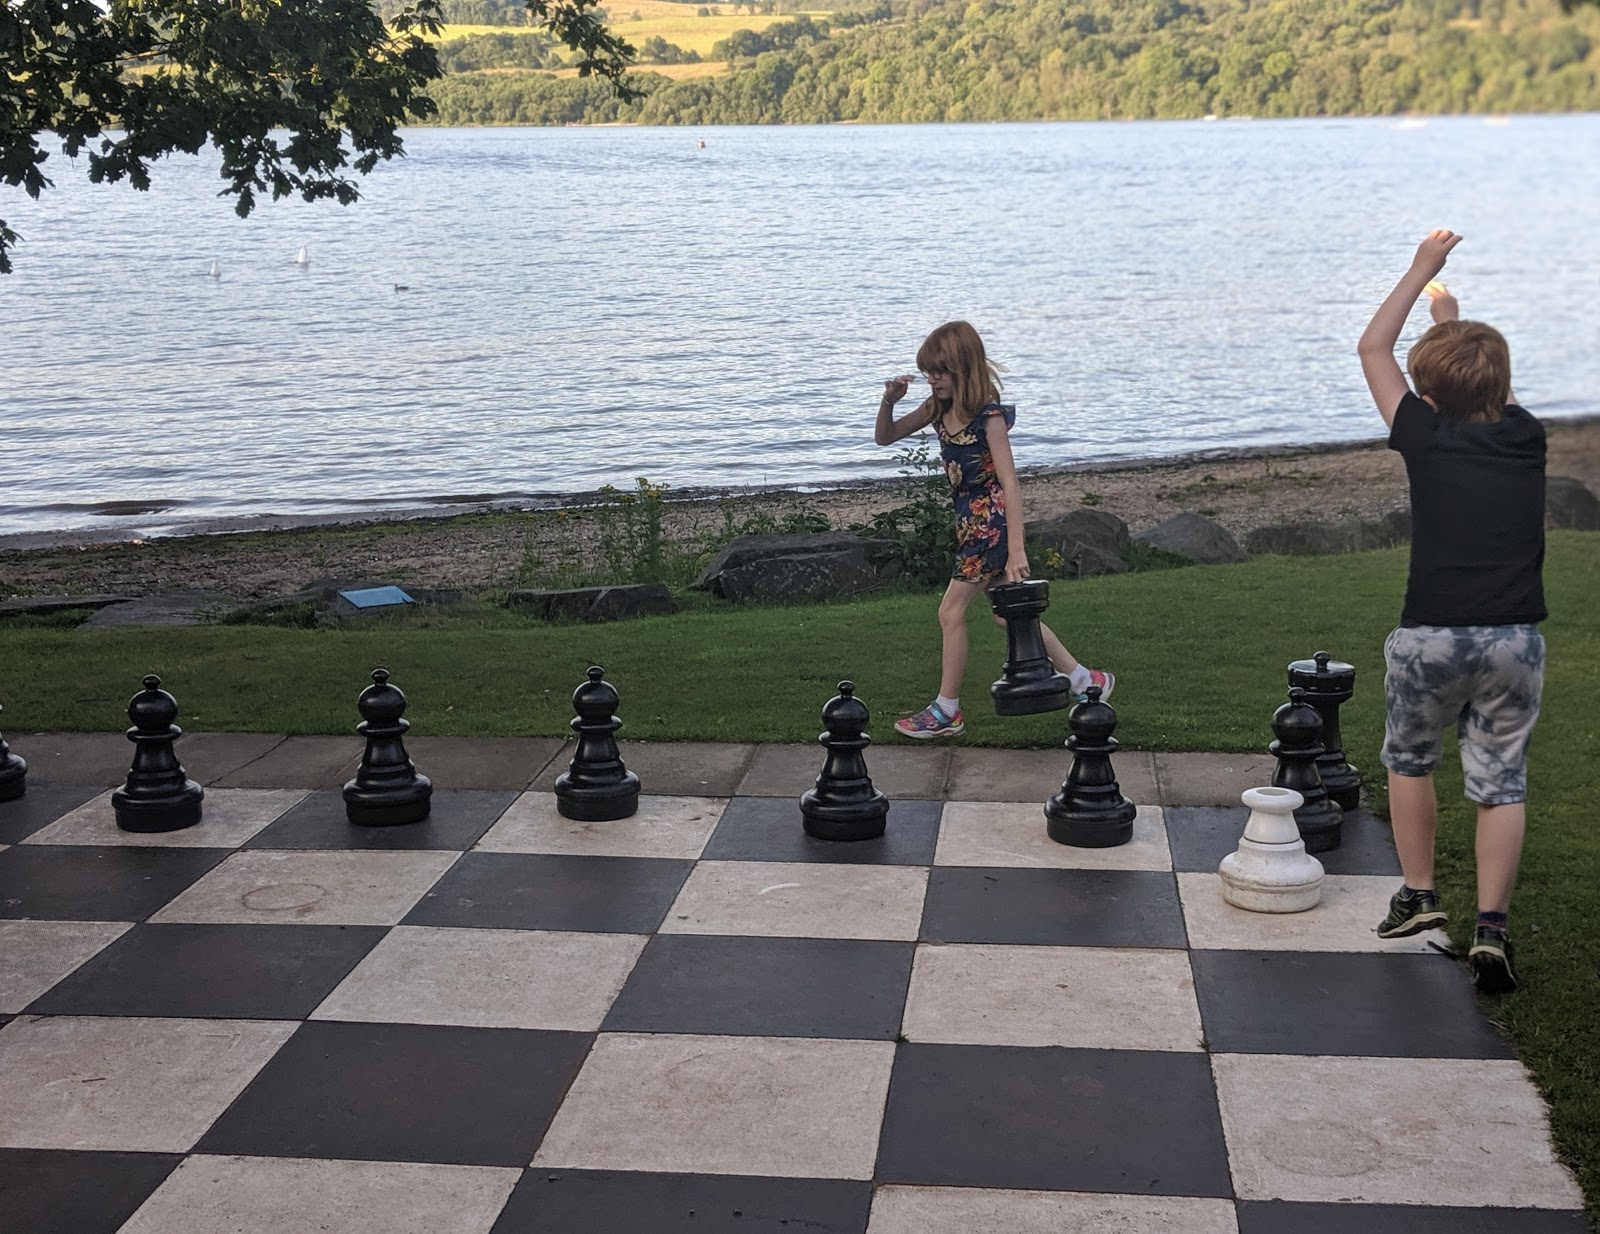 A Short Break at Cameron Lodges, Loch Lomond - the boat house - giant chess